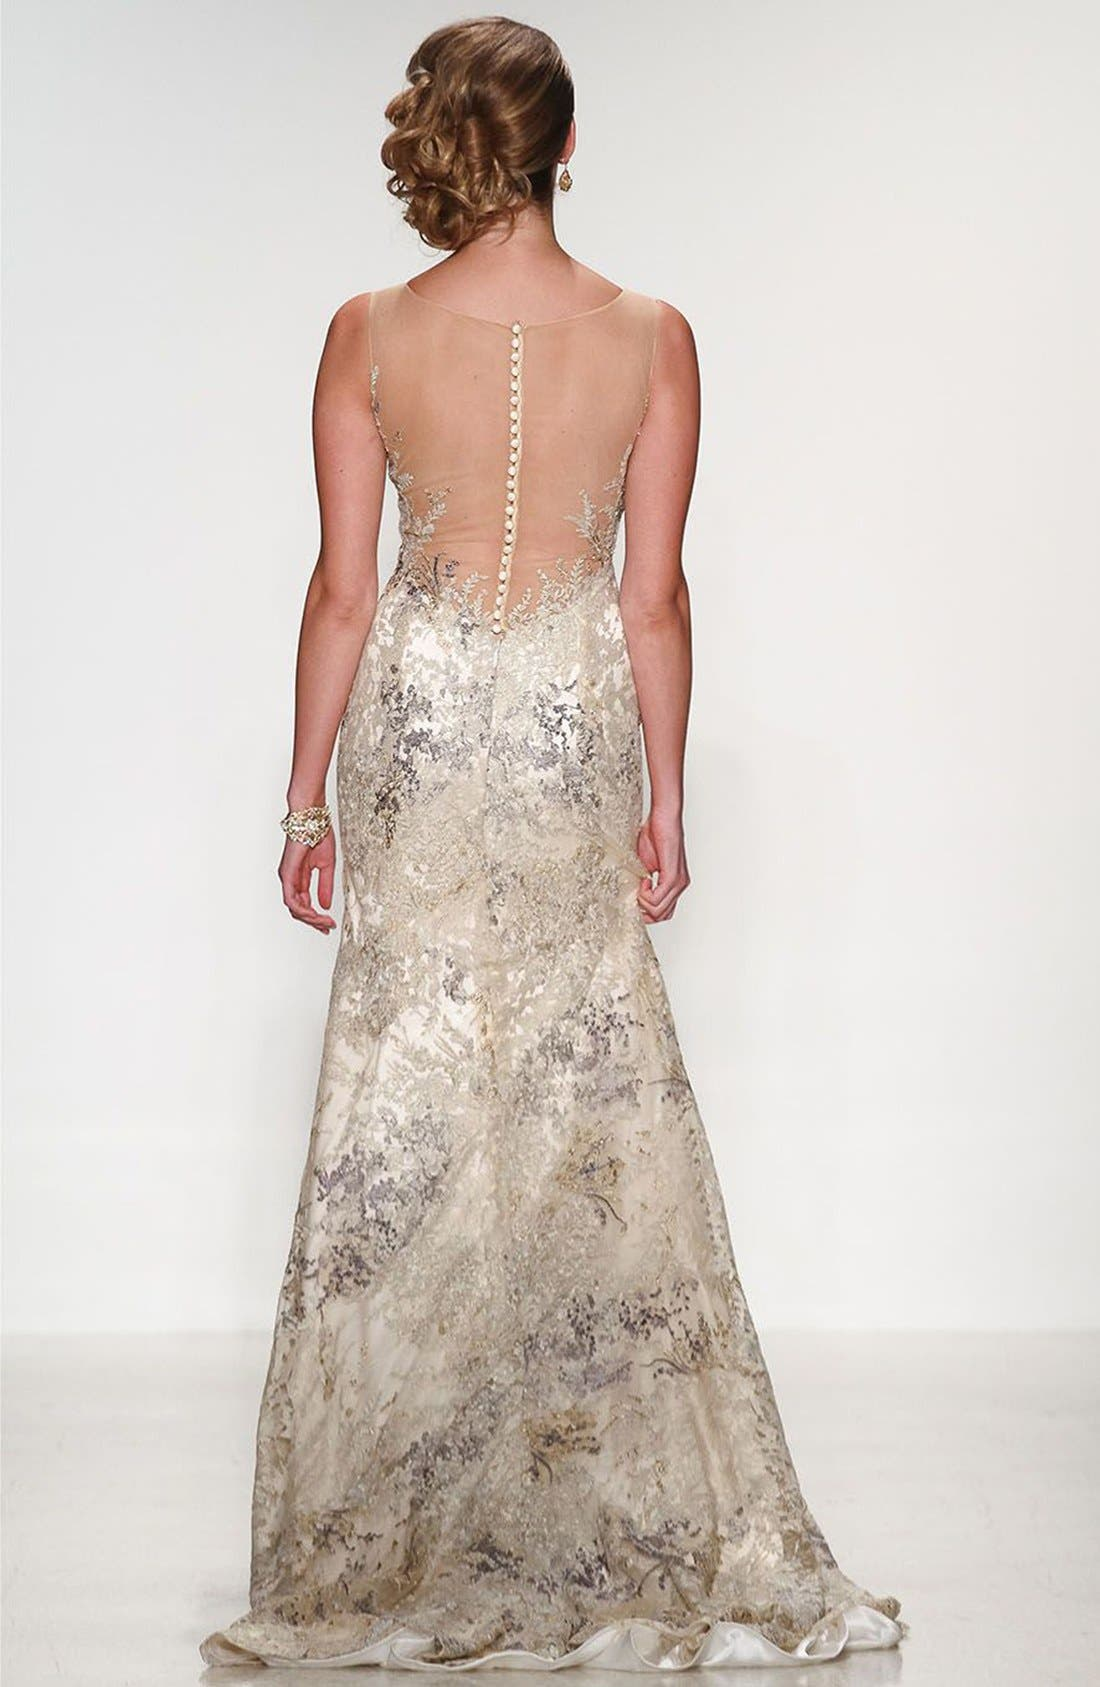 Thyme Sleeveless Illusion Embroidered Lace Gown,                             Alternate thumbnail 2, color,                             901